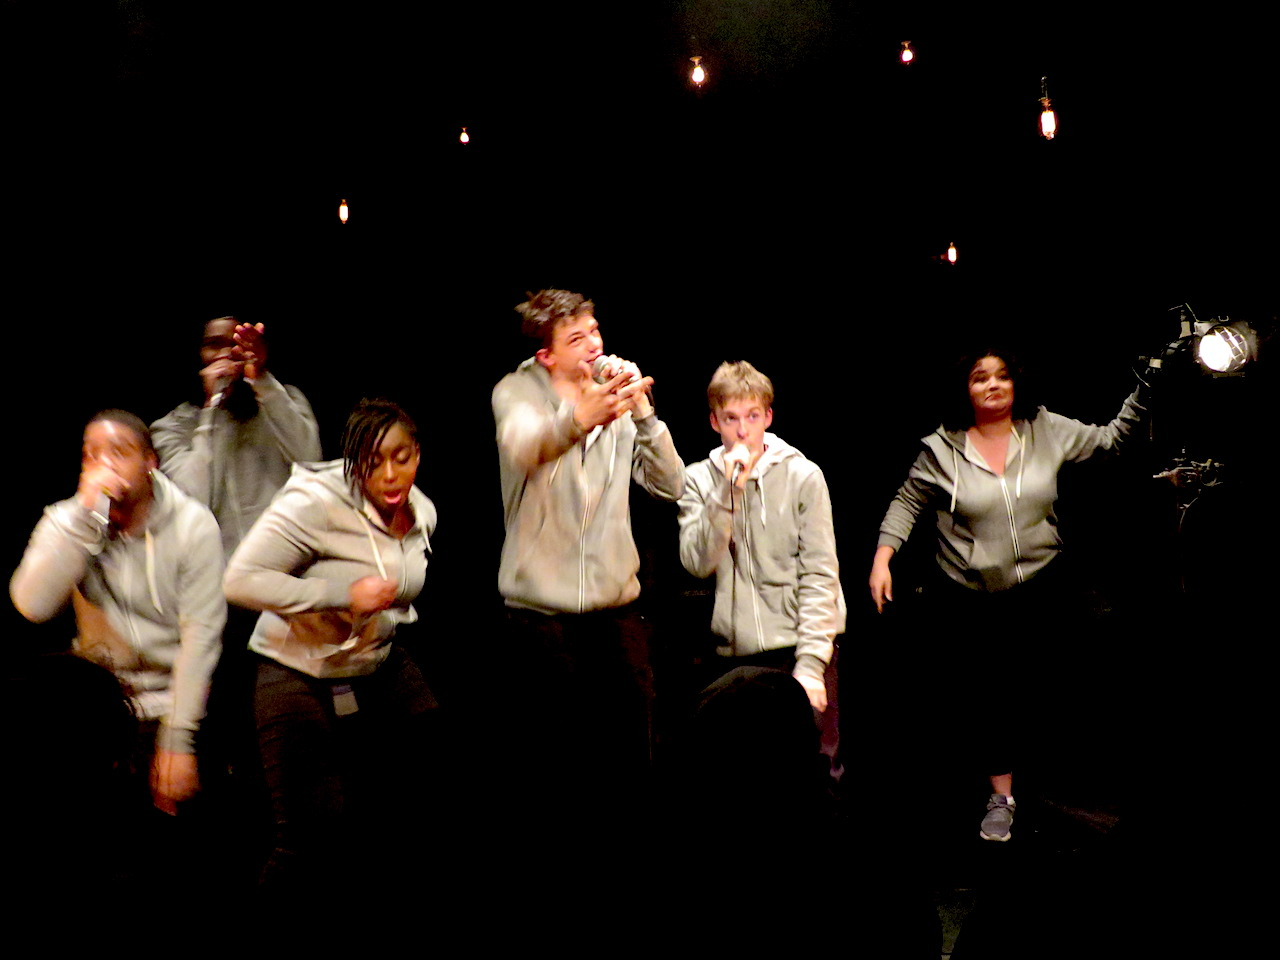 BAC Beatbox Academy performing their song 'Hideous' as part of their show 'Frankenstein' at Battersea Arts Centre on March 22, 2018 (Photo: Andy Worthington).